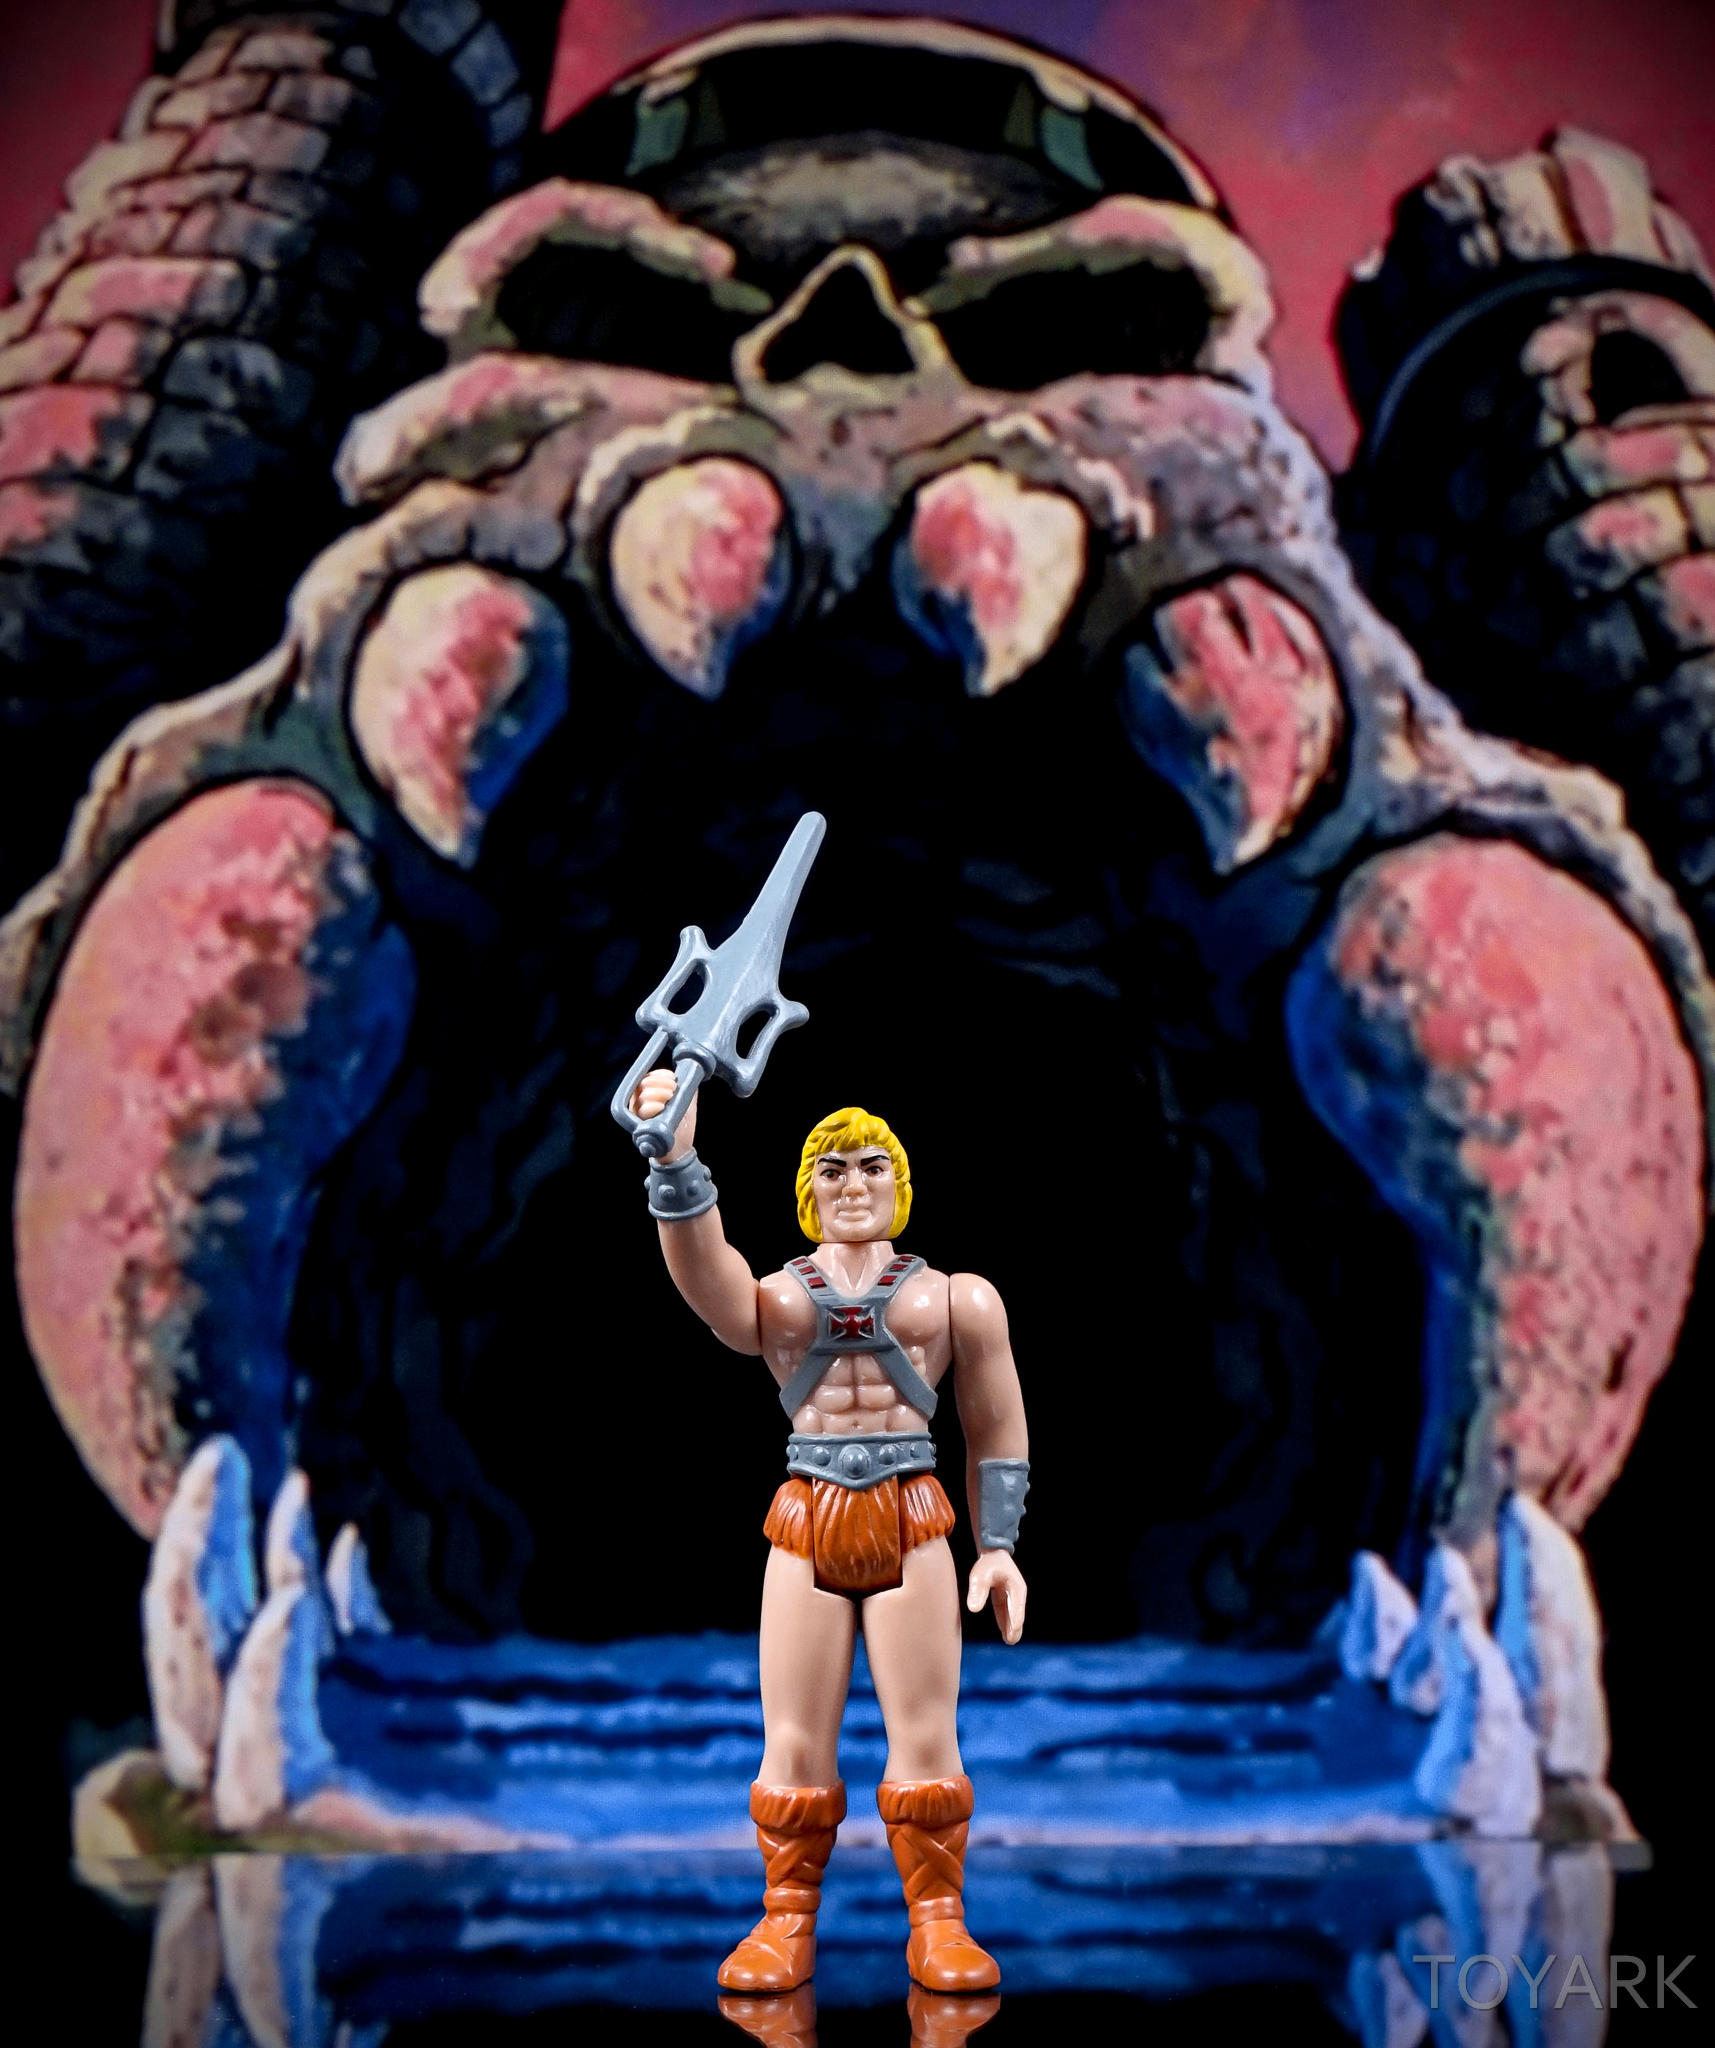 http://news.toyark.com/wp-content/uploads/sites/4/2016/07/MOTU-Super-7-He-Man-014.jpg